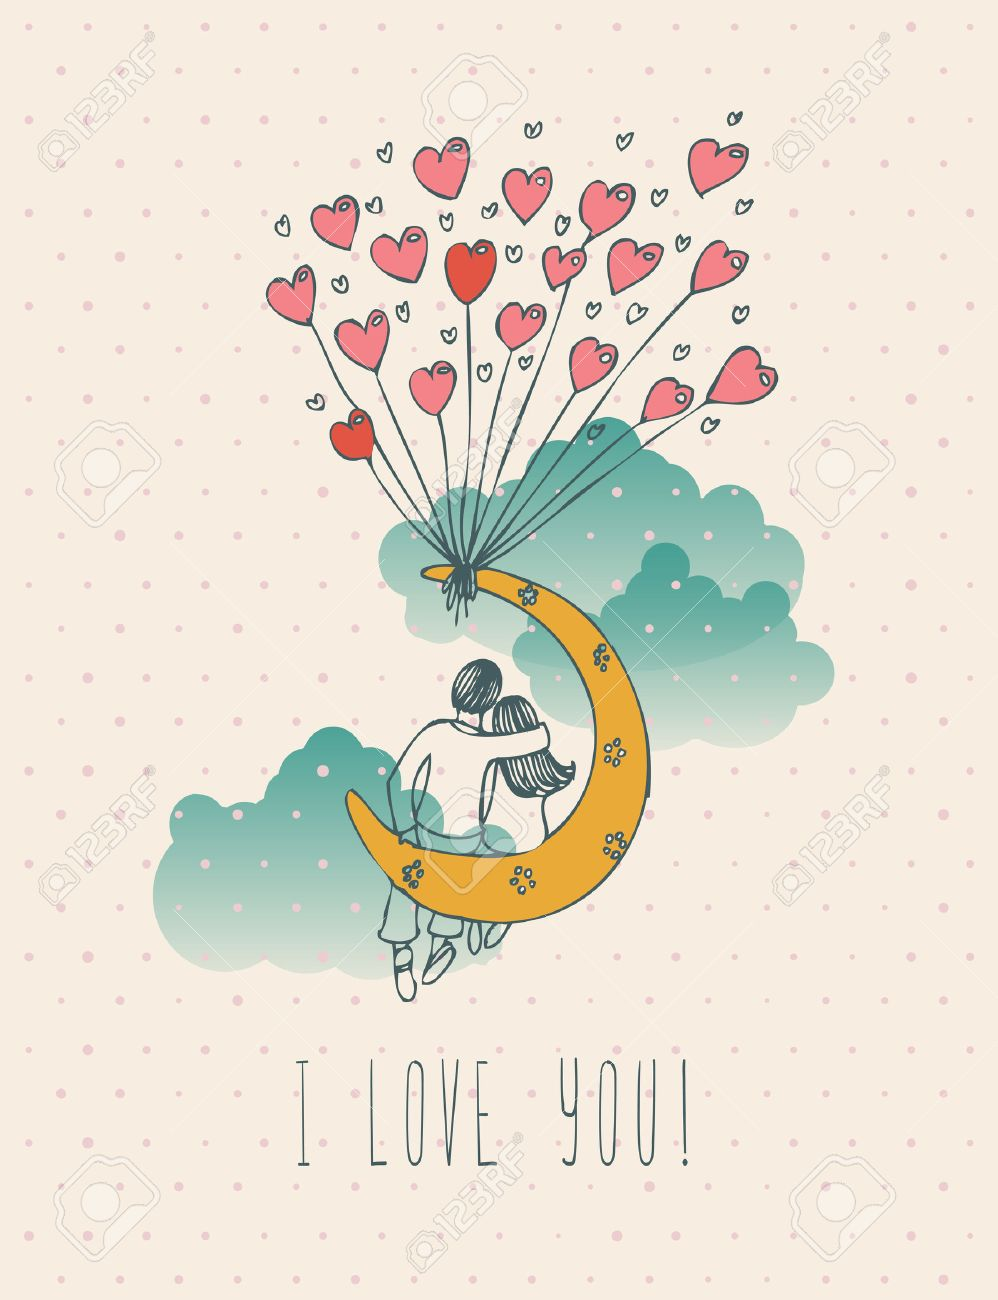 Valentines day greeting card in vintage hipster design. I love you retro note. Hand drawn style. - 51872861